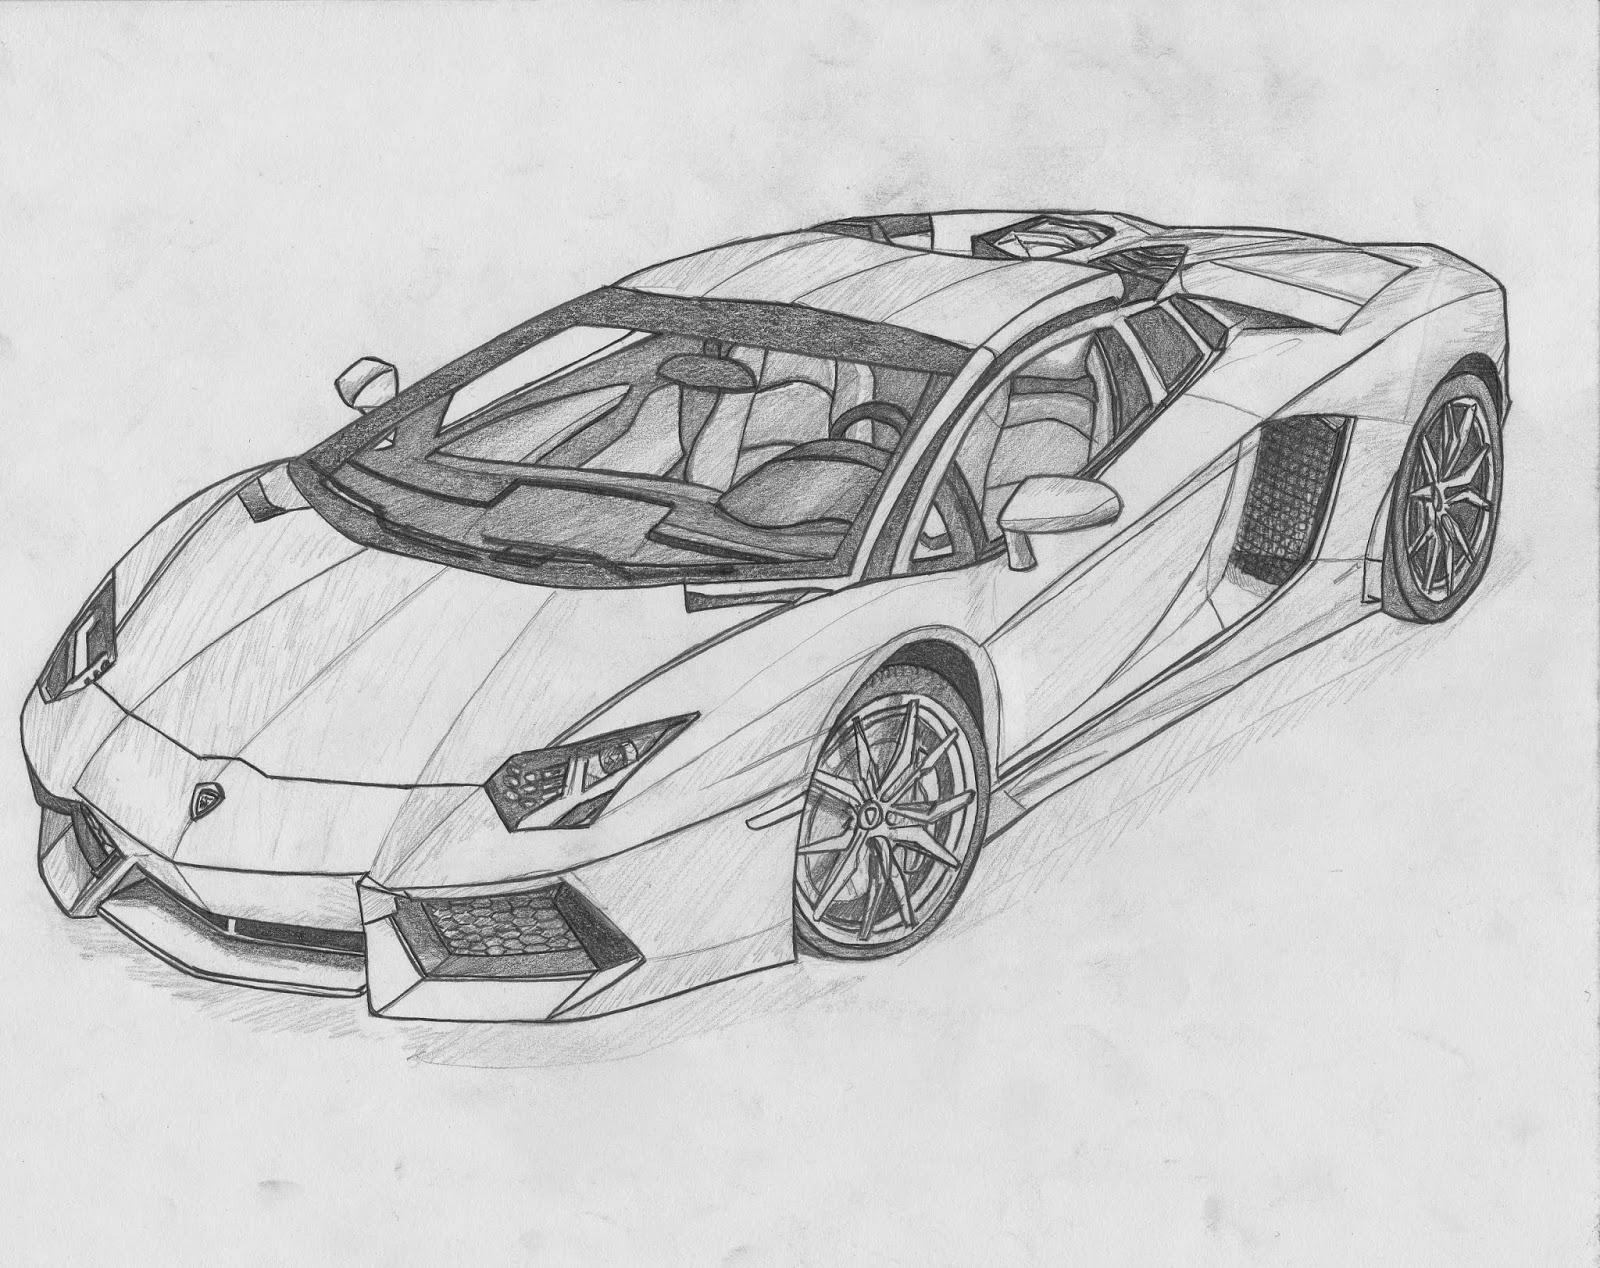 Drawn vehicle lamborghini Veneno Drawing White for Black